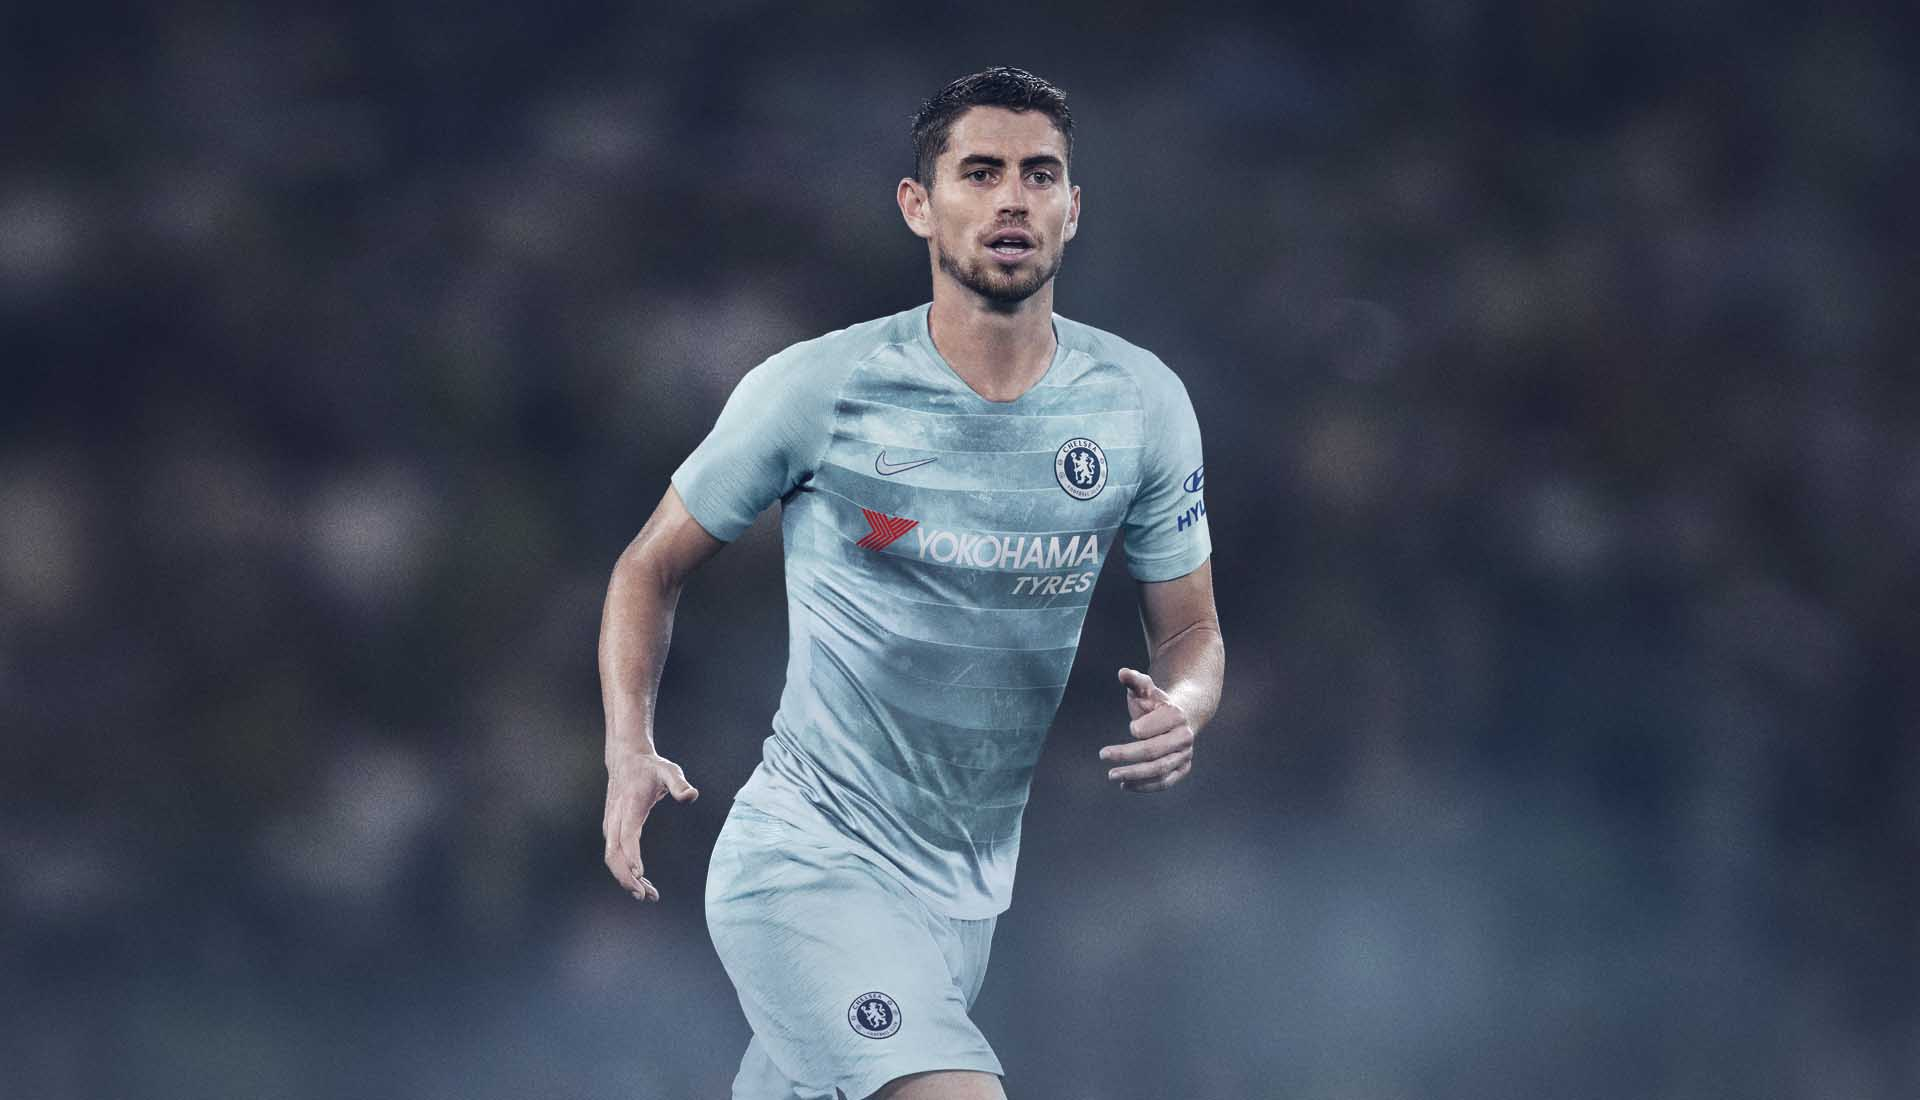 4bd8f9a80 Nike Launch The Chelsea 18 19 Third Shirt. 05 September 2018